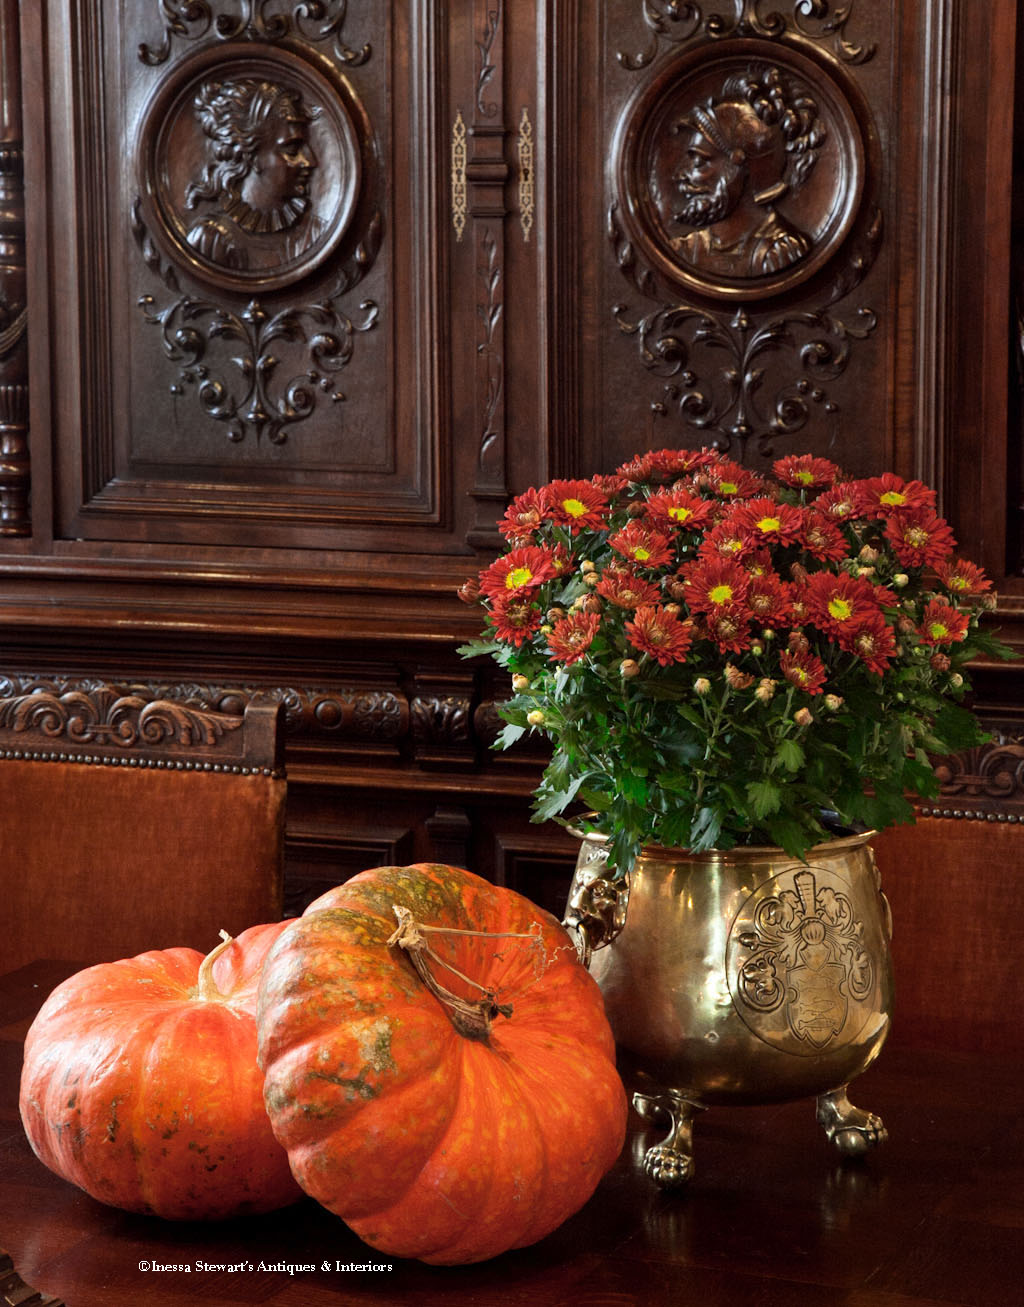 French Antique Planter, Pumpkins, and Flowers